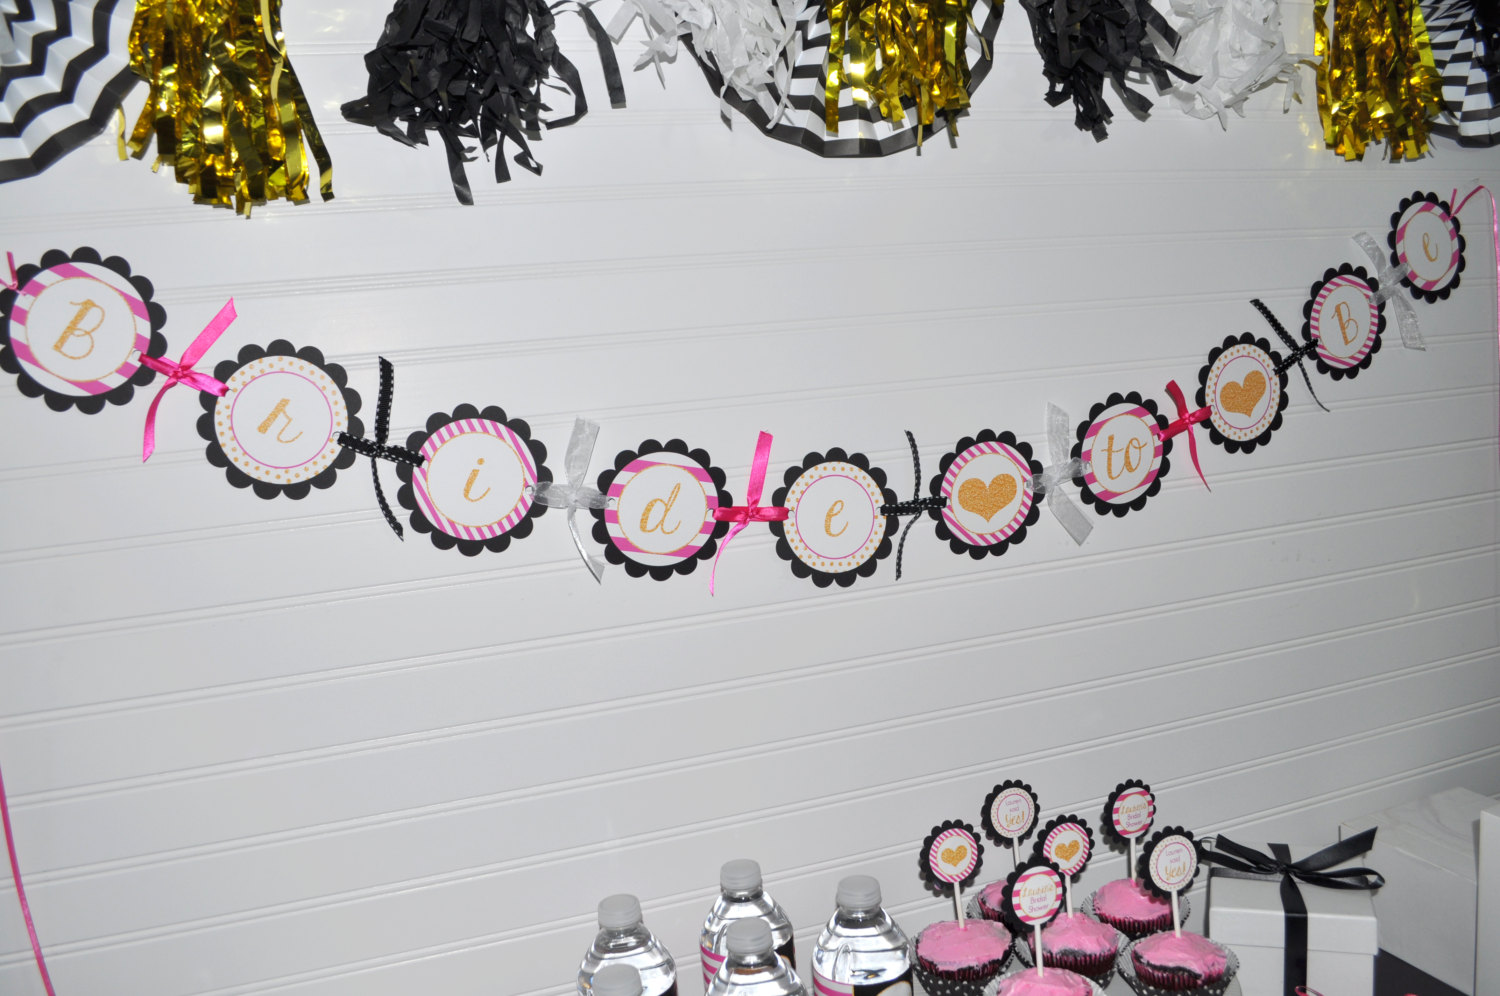 bridal shower banner bride to be banner bachelorette party banner wedding party banner pink black and gold heart banner party decor